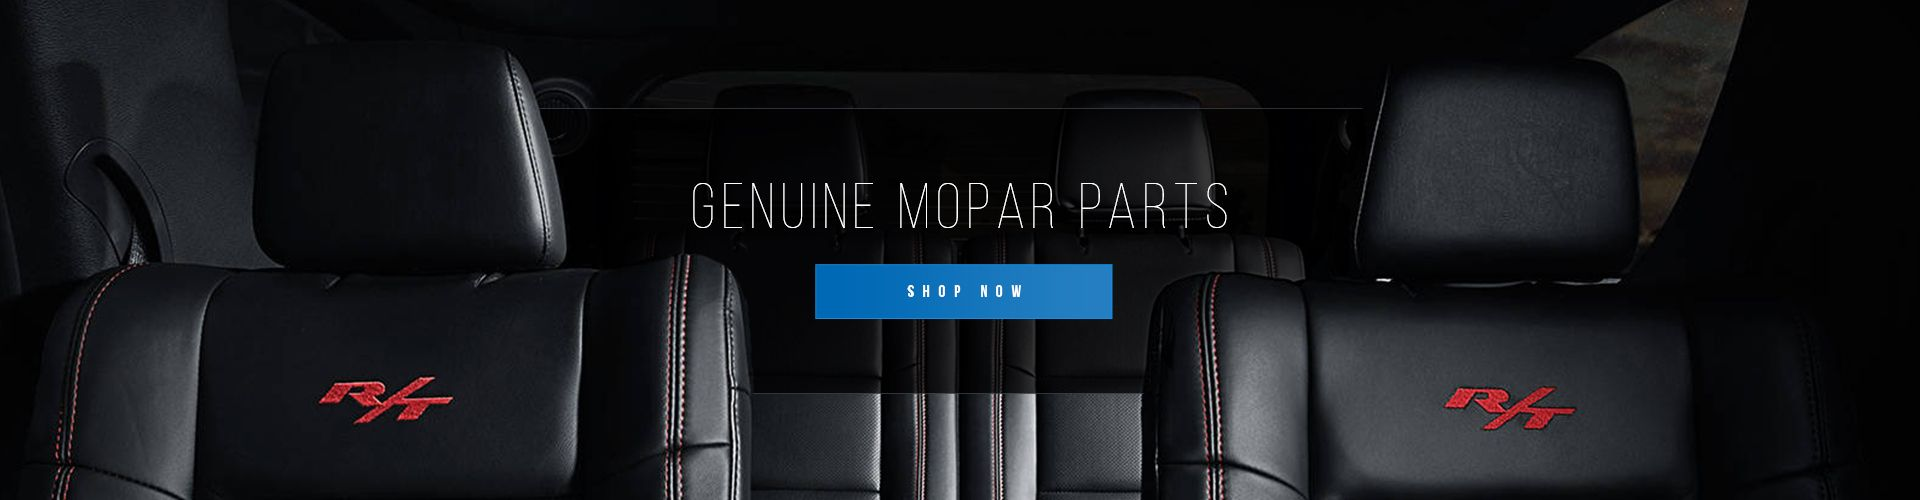 Mopar Genuine Parts